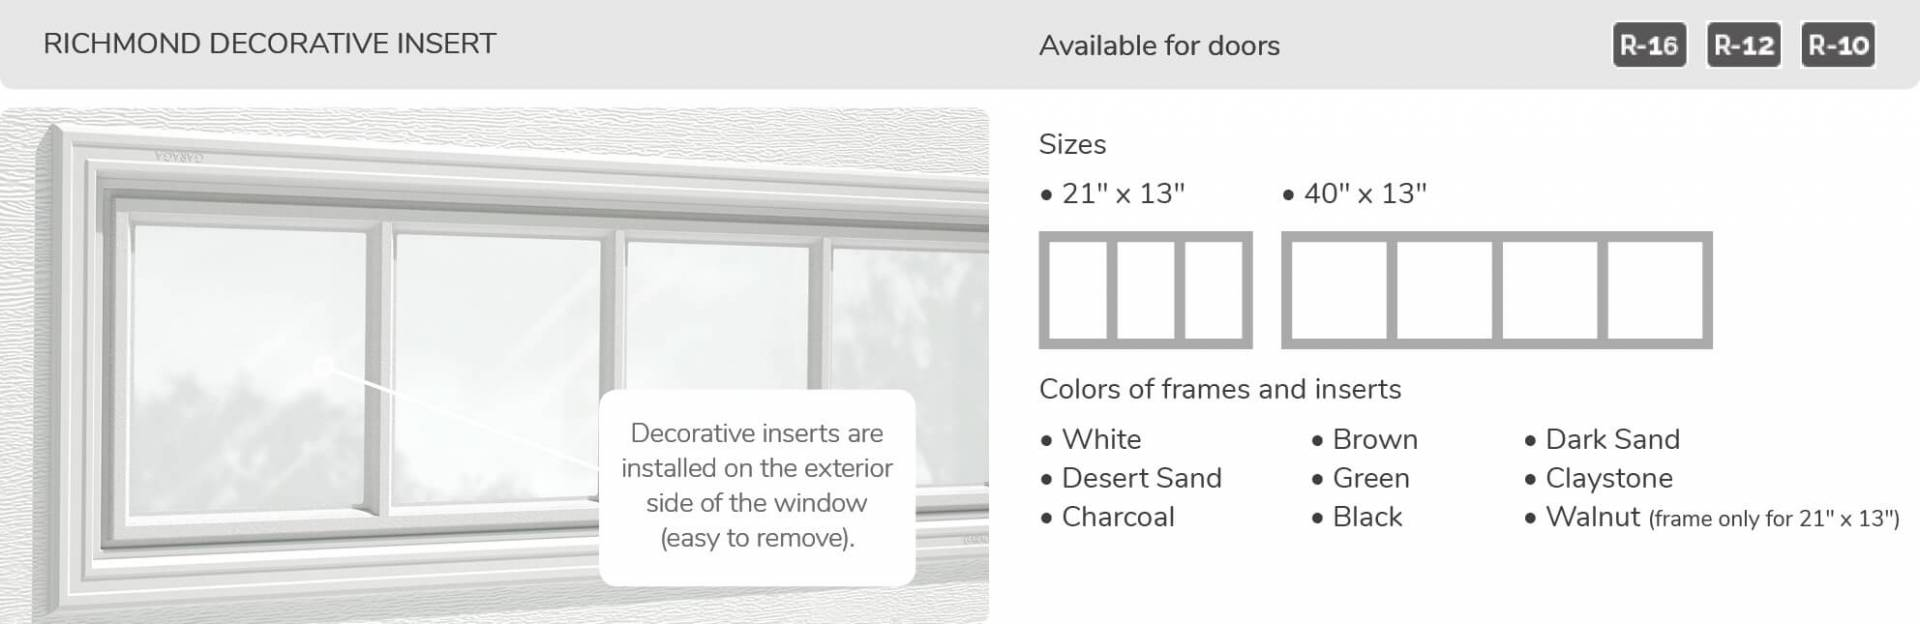 Richmond Decorative Insert, 21' x 13' and 40' x 13', available for doors R-16, R-12 and R-10